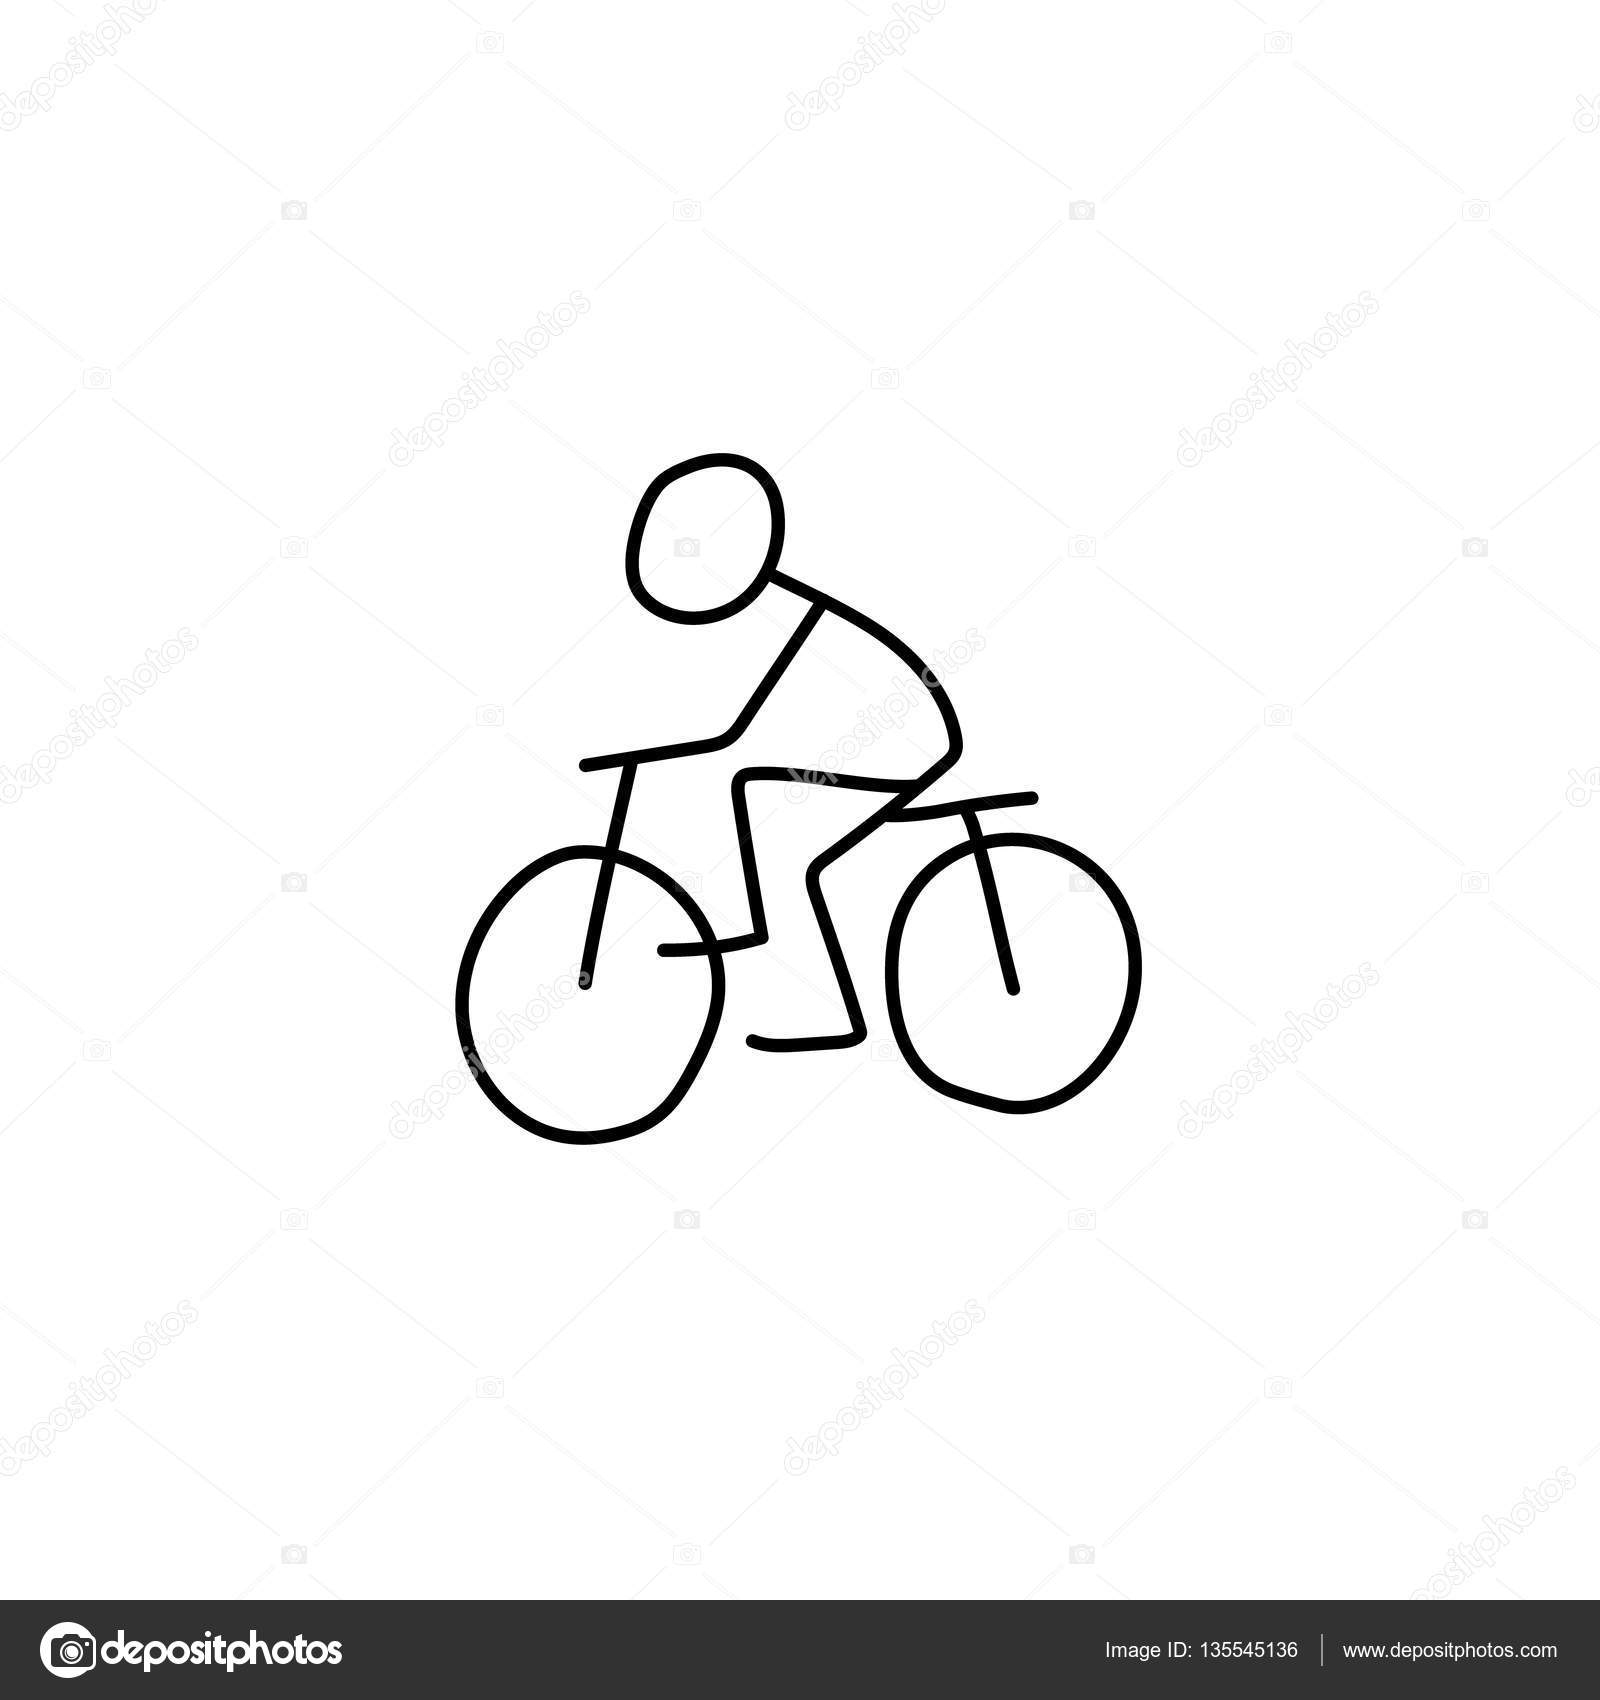 Watch besides Sheet Metal Forming Processes further Tokyo in addition 54 additionally Stock Illustration Stick Figure Bike Rider Icon. on motor support